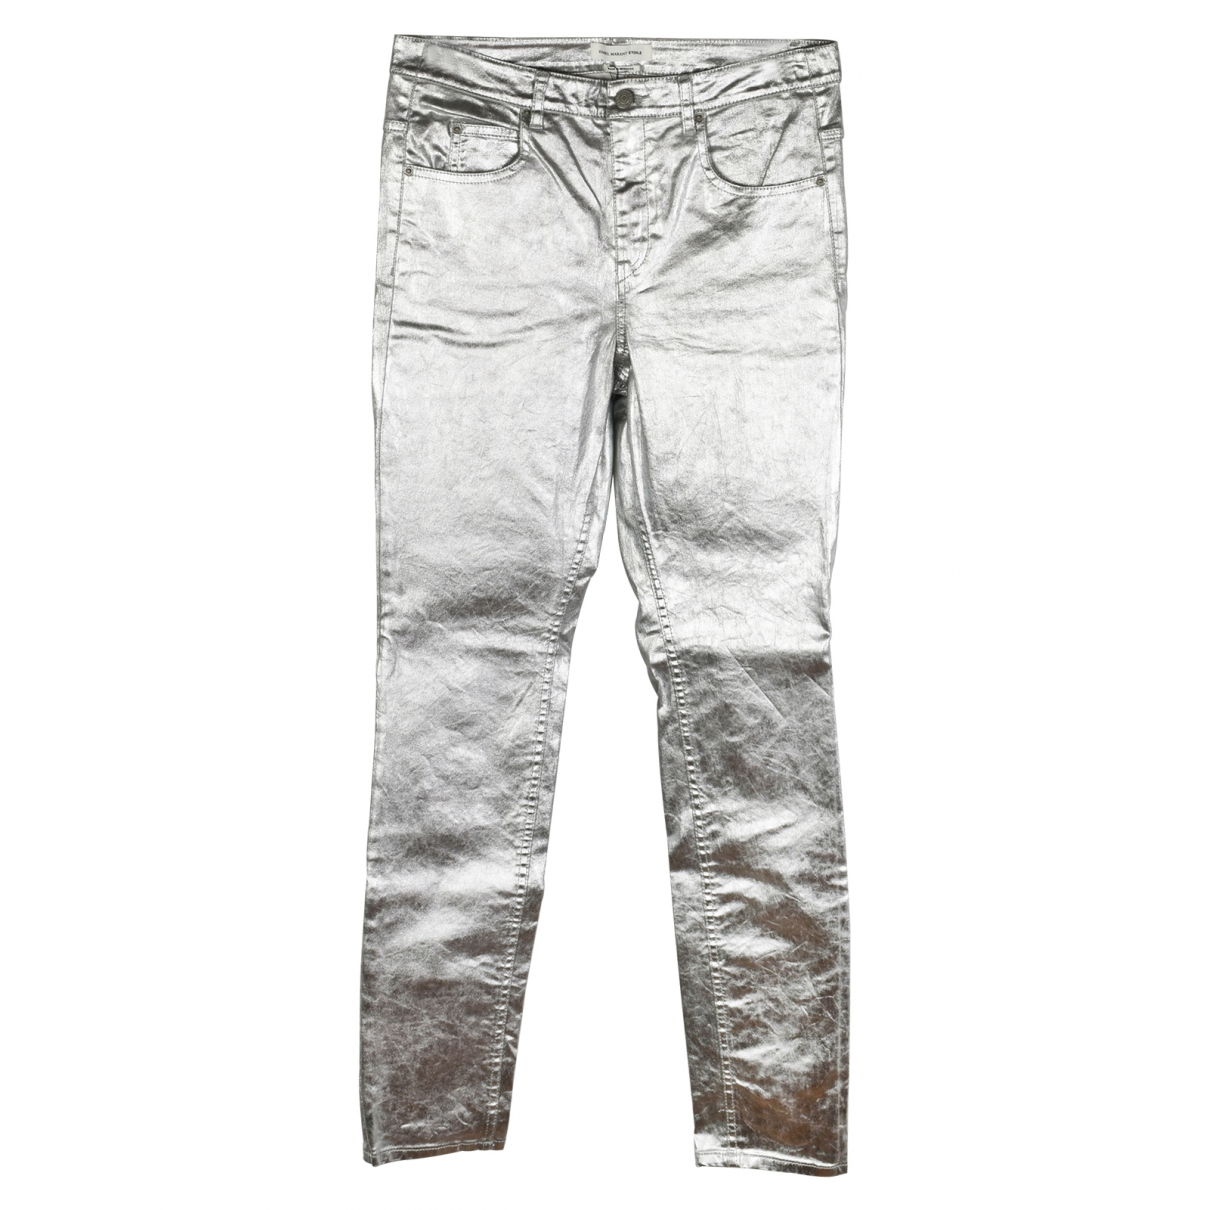 Isabel Marant Etoile \N Silver Cotton Jeans for Women 30 US